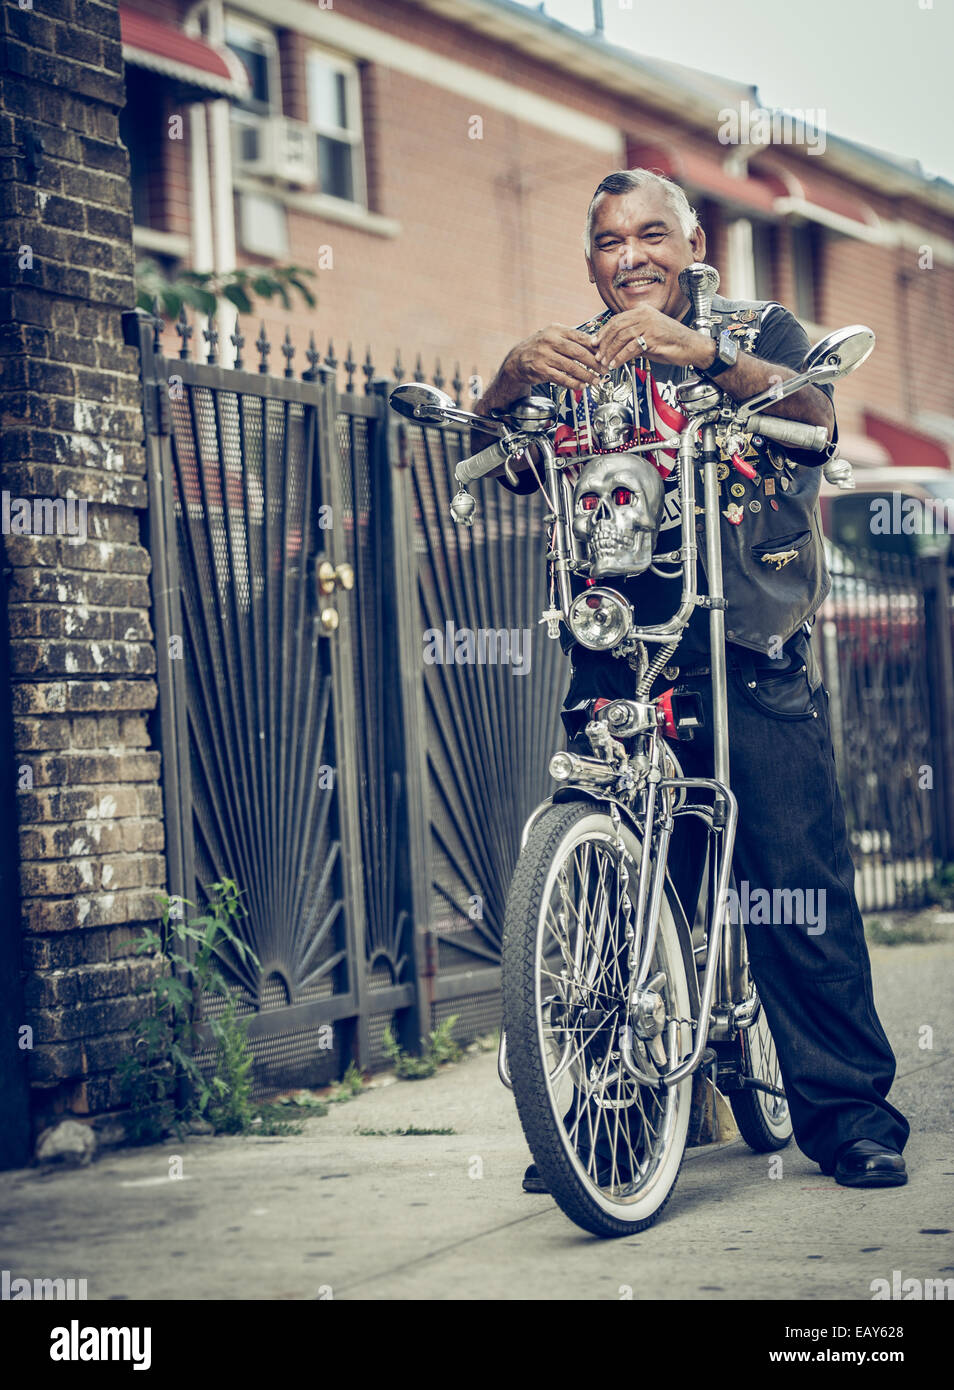 Latino man poses with his chopper bicycle - Stock Image